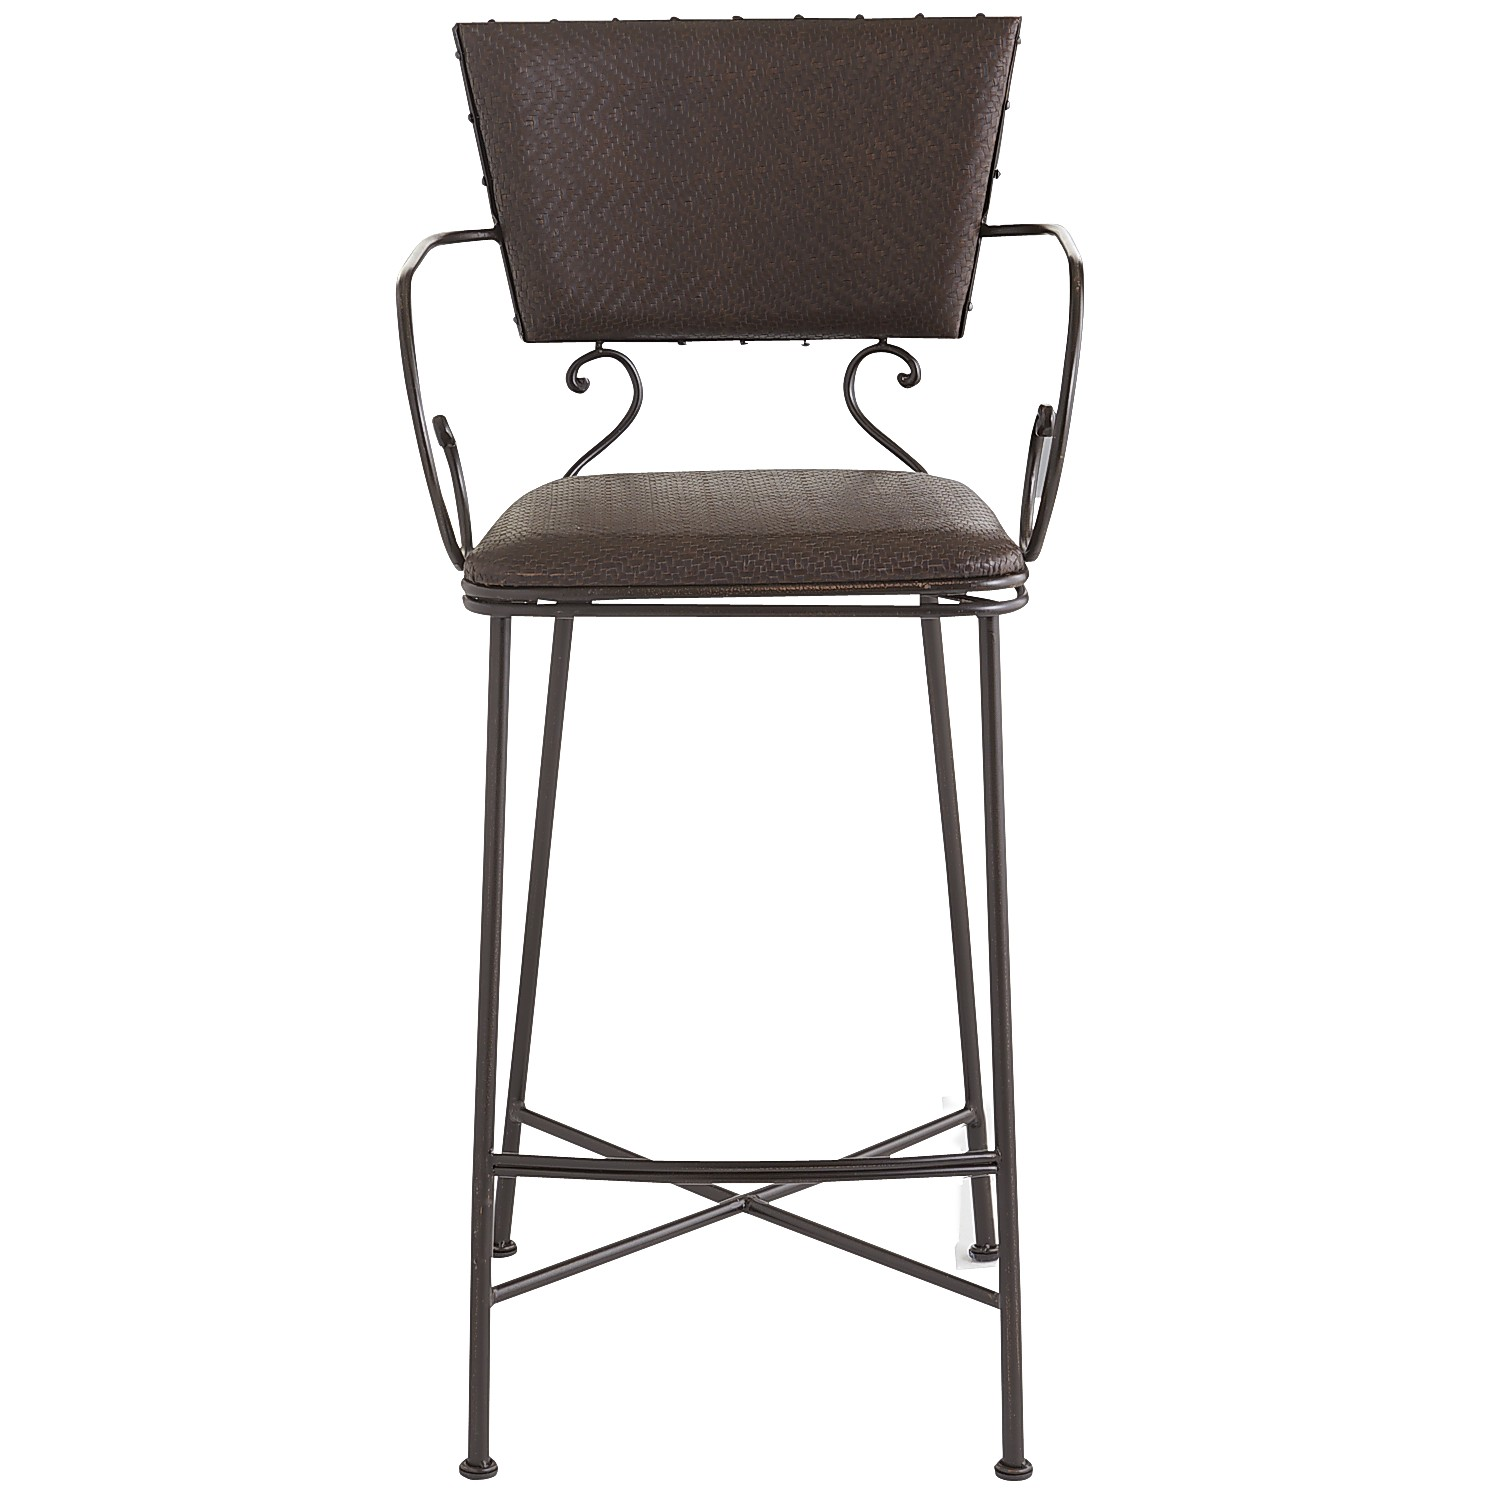 Chesington Bar Stool - Tech Brown